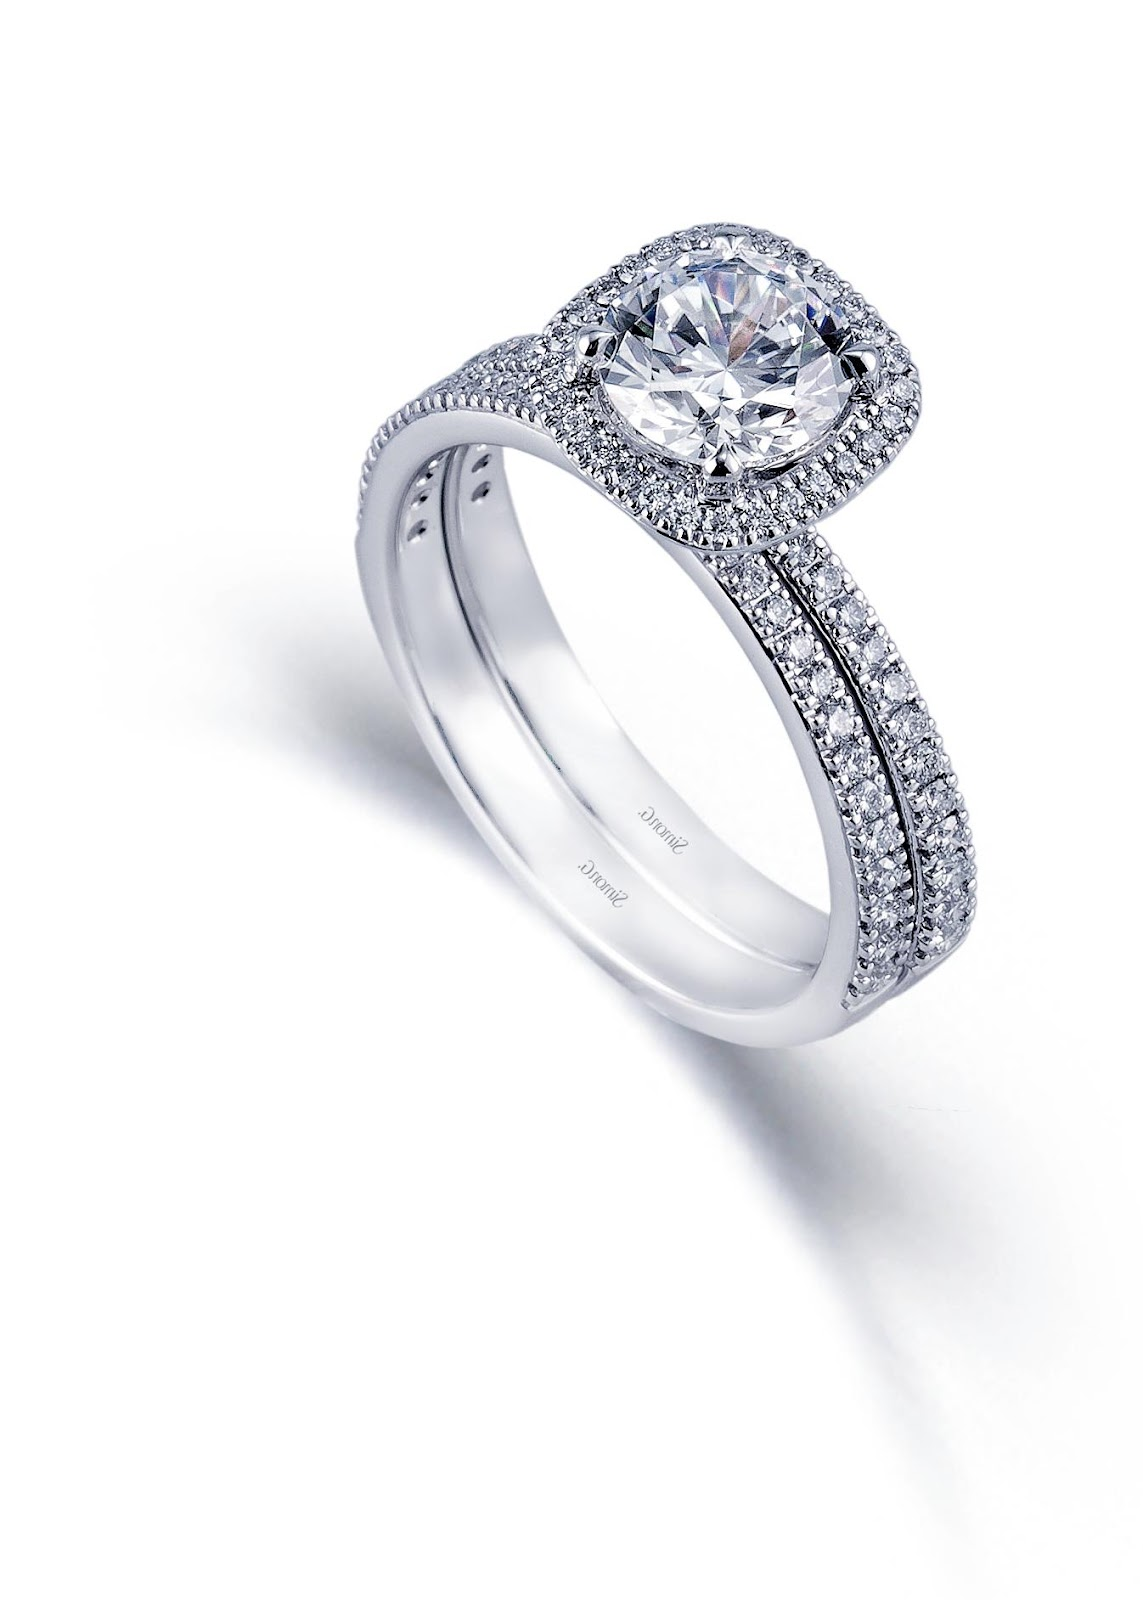 Simon G. Platinum Wedding Ring